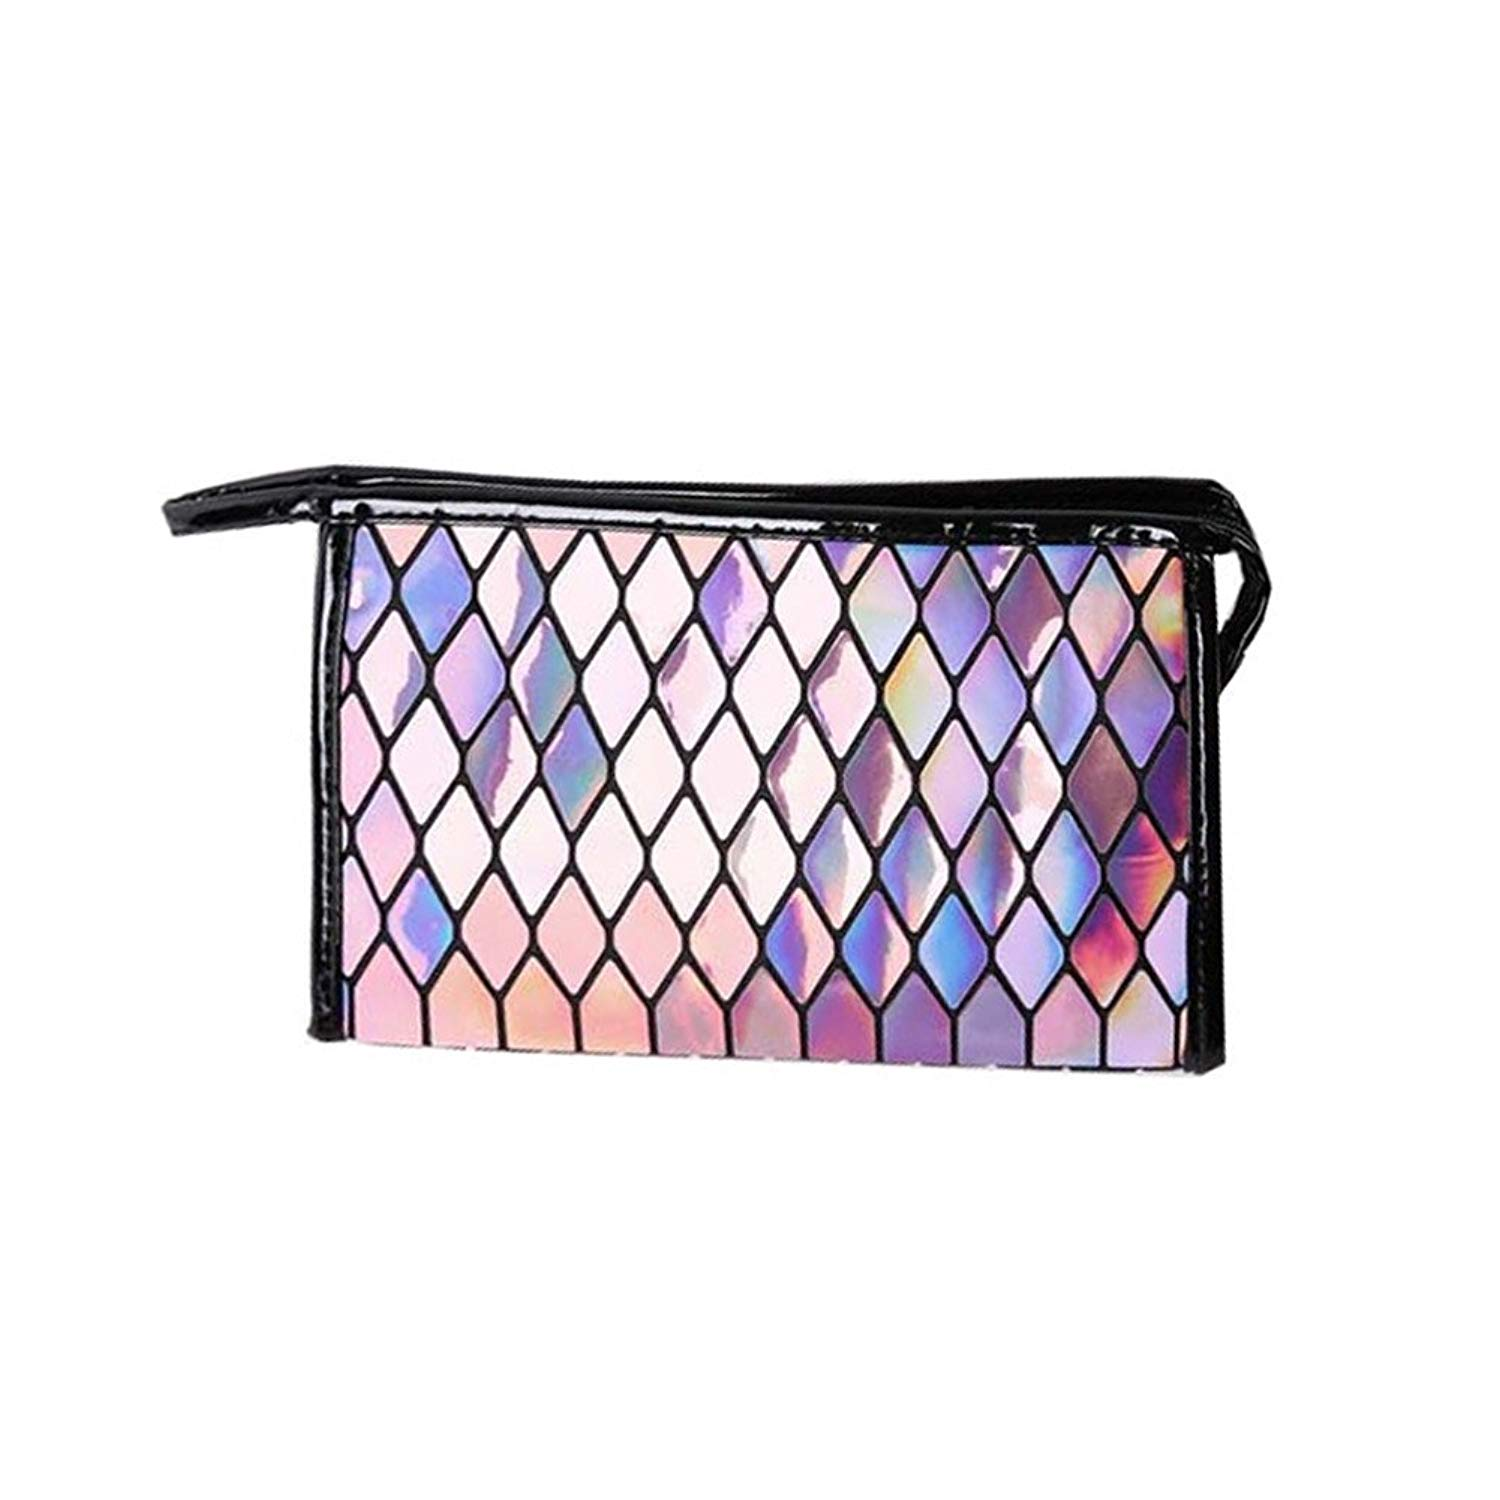 Andear Womens Holographic Laser Wallet Purse Geometry Pattern PU leather Cosmetic Makeup Bag Envelop Clutch